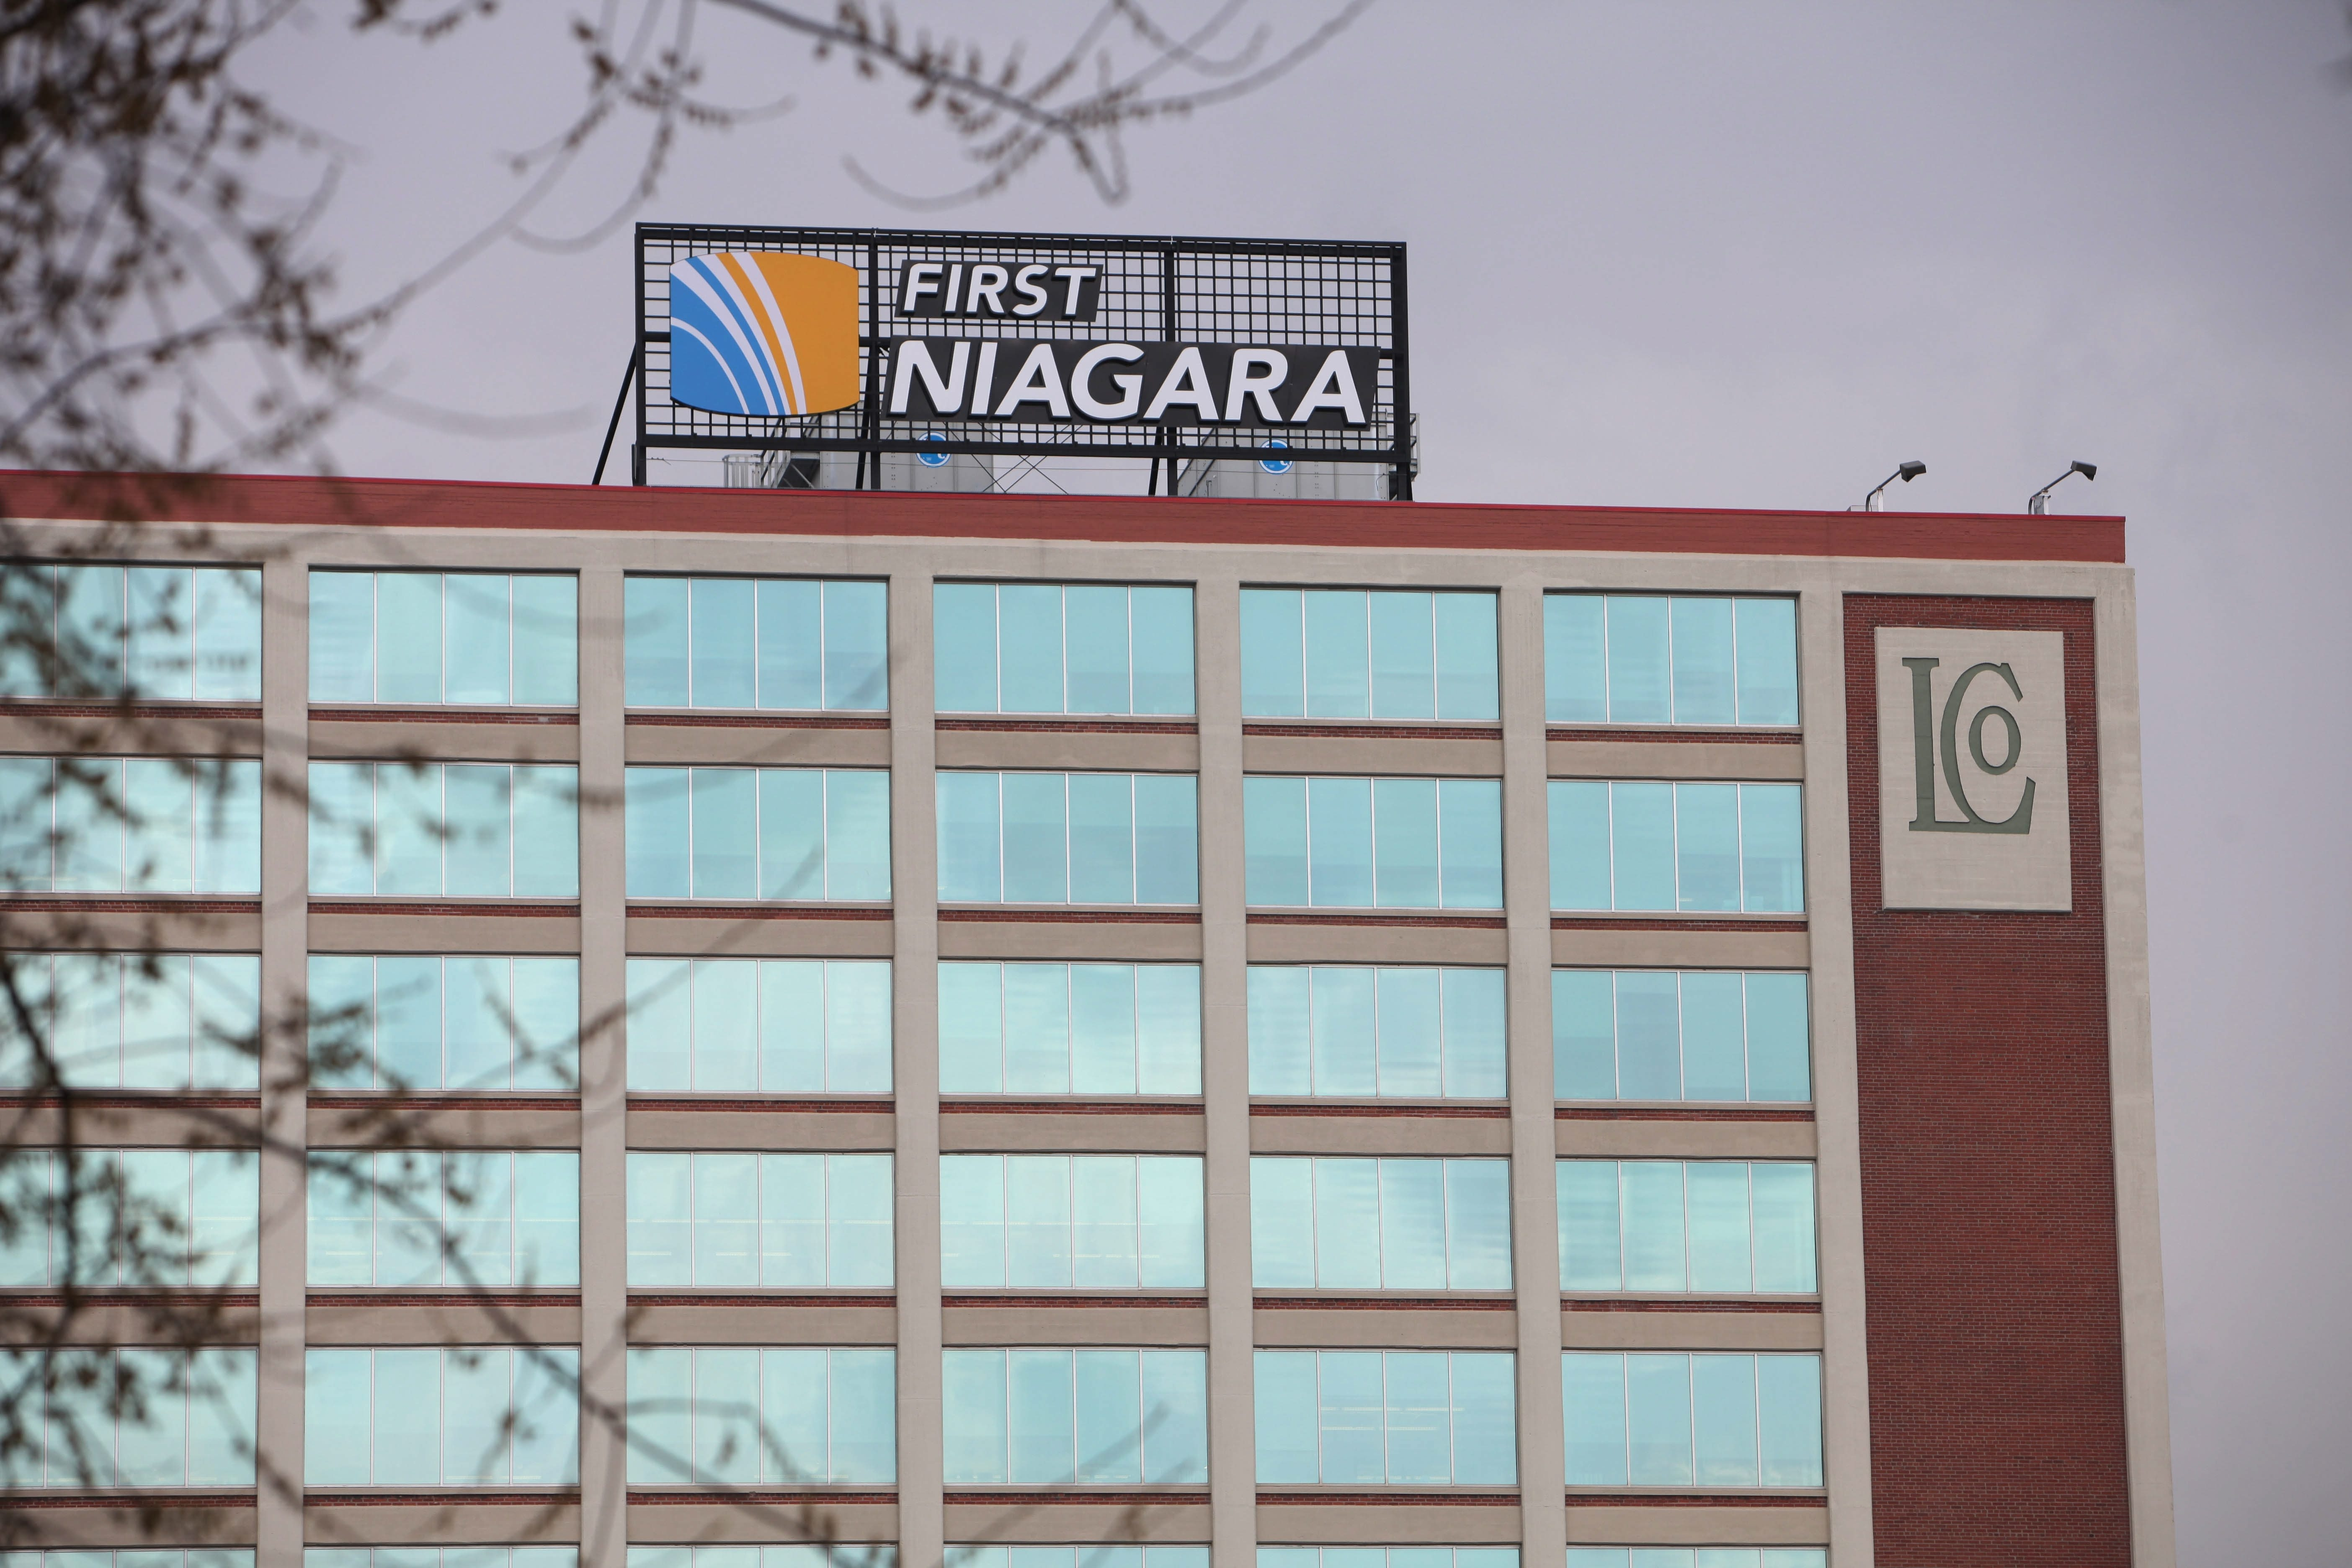 Sharon Cantillon/Buffalo News file photoFirst Niagara Bank CEO Gary M. Crosbby is overseeing the bank's focus on execution after years of acquisitions.